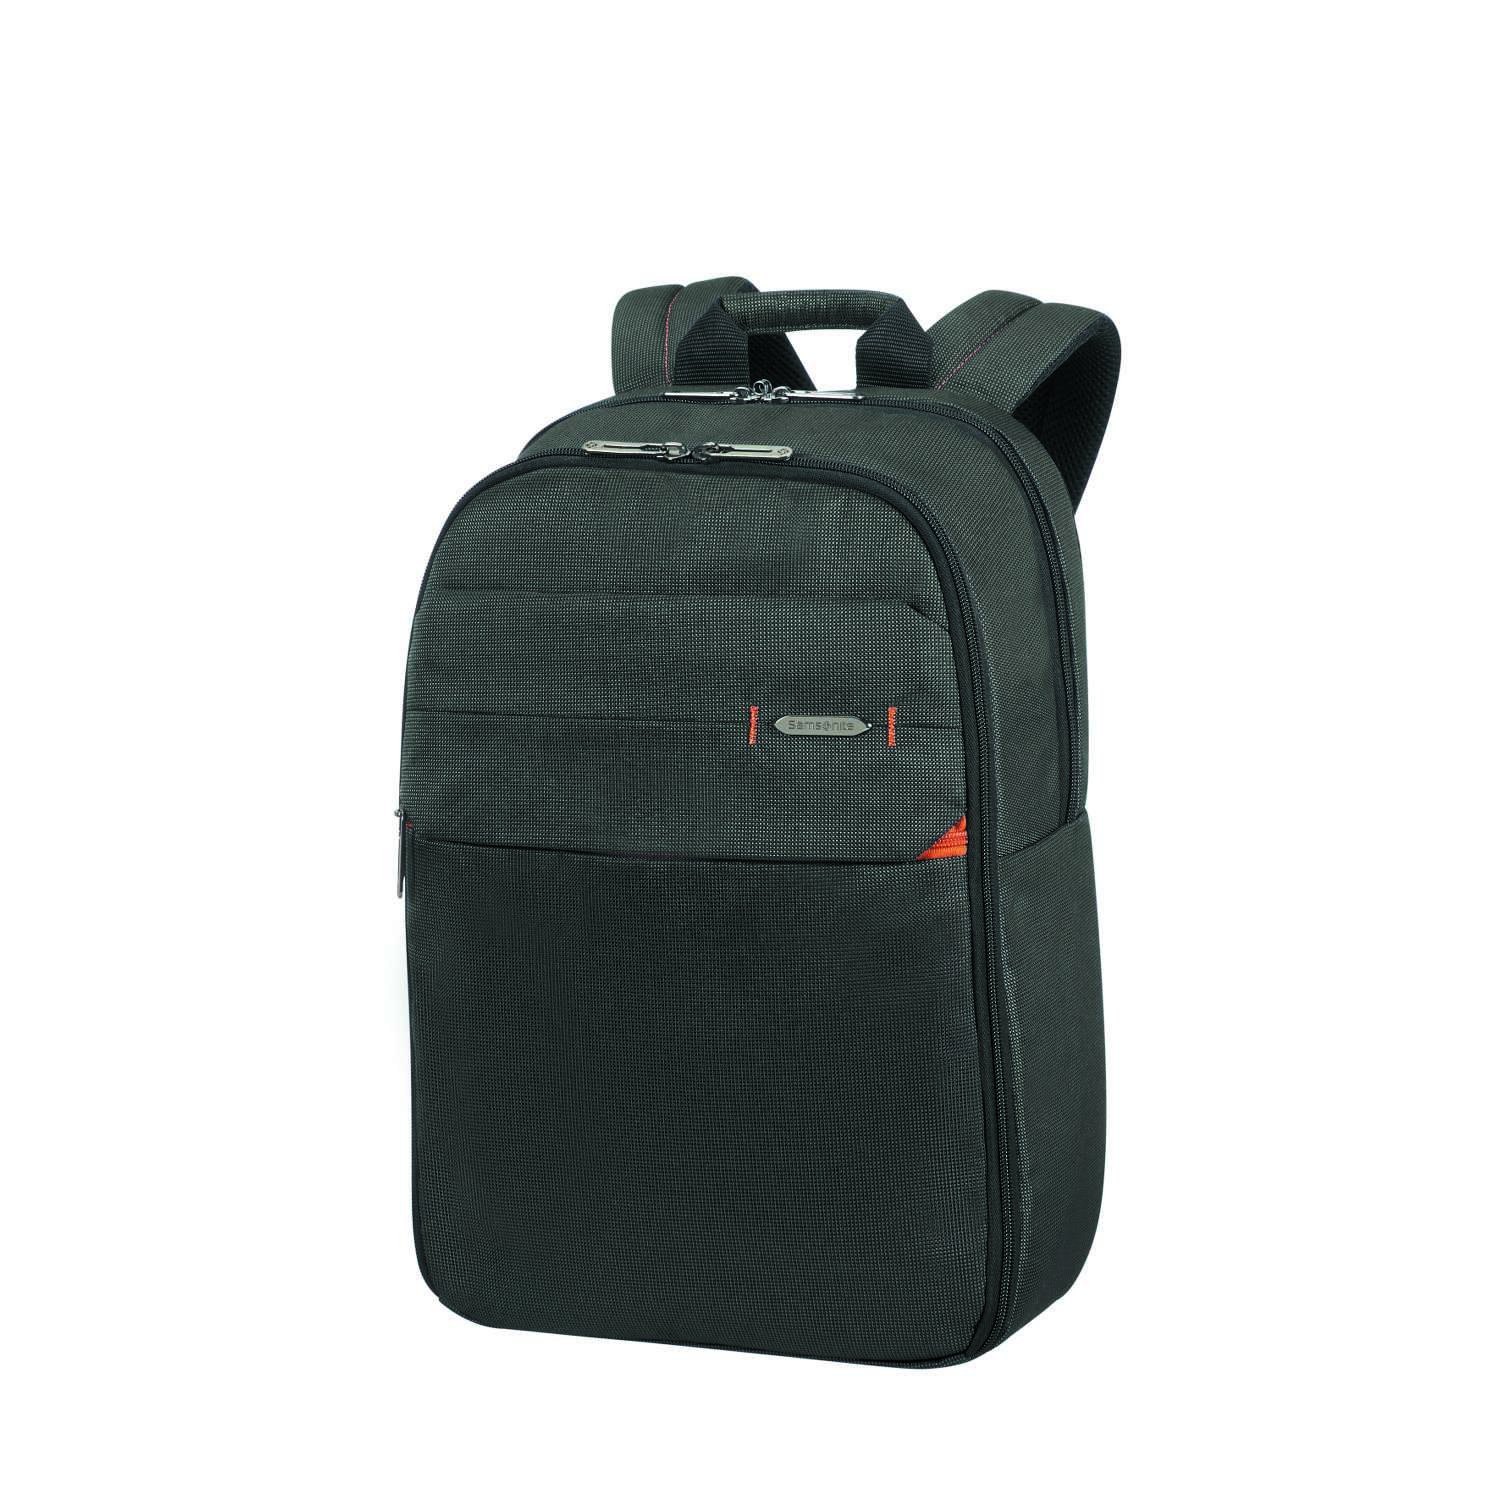 SAMSONITE LAPTOP BACKPACK 15.6 (SPACE BLUE) -NETWORK 3  Zaino Casual, 0 cm, Blu 93062-1820